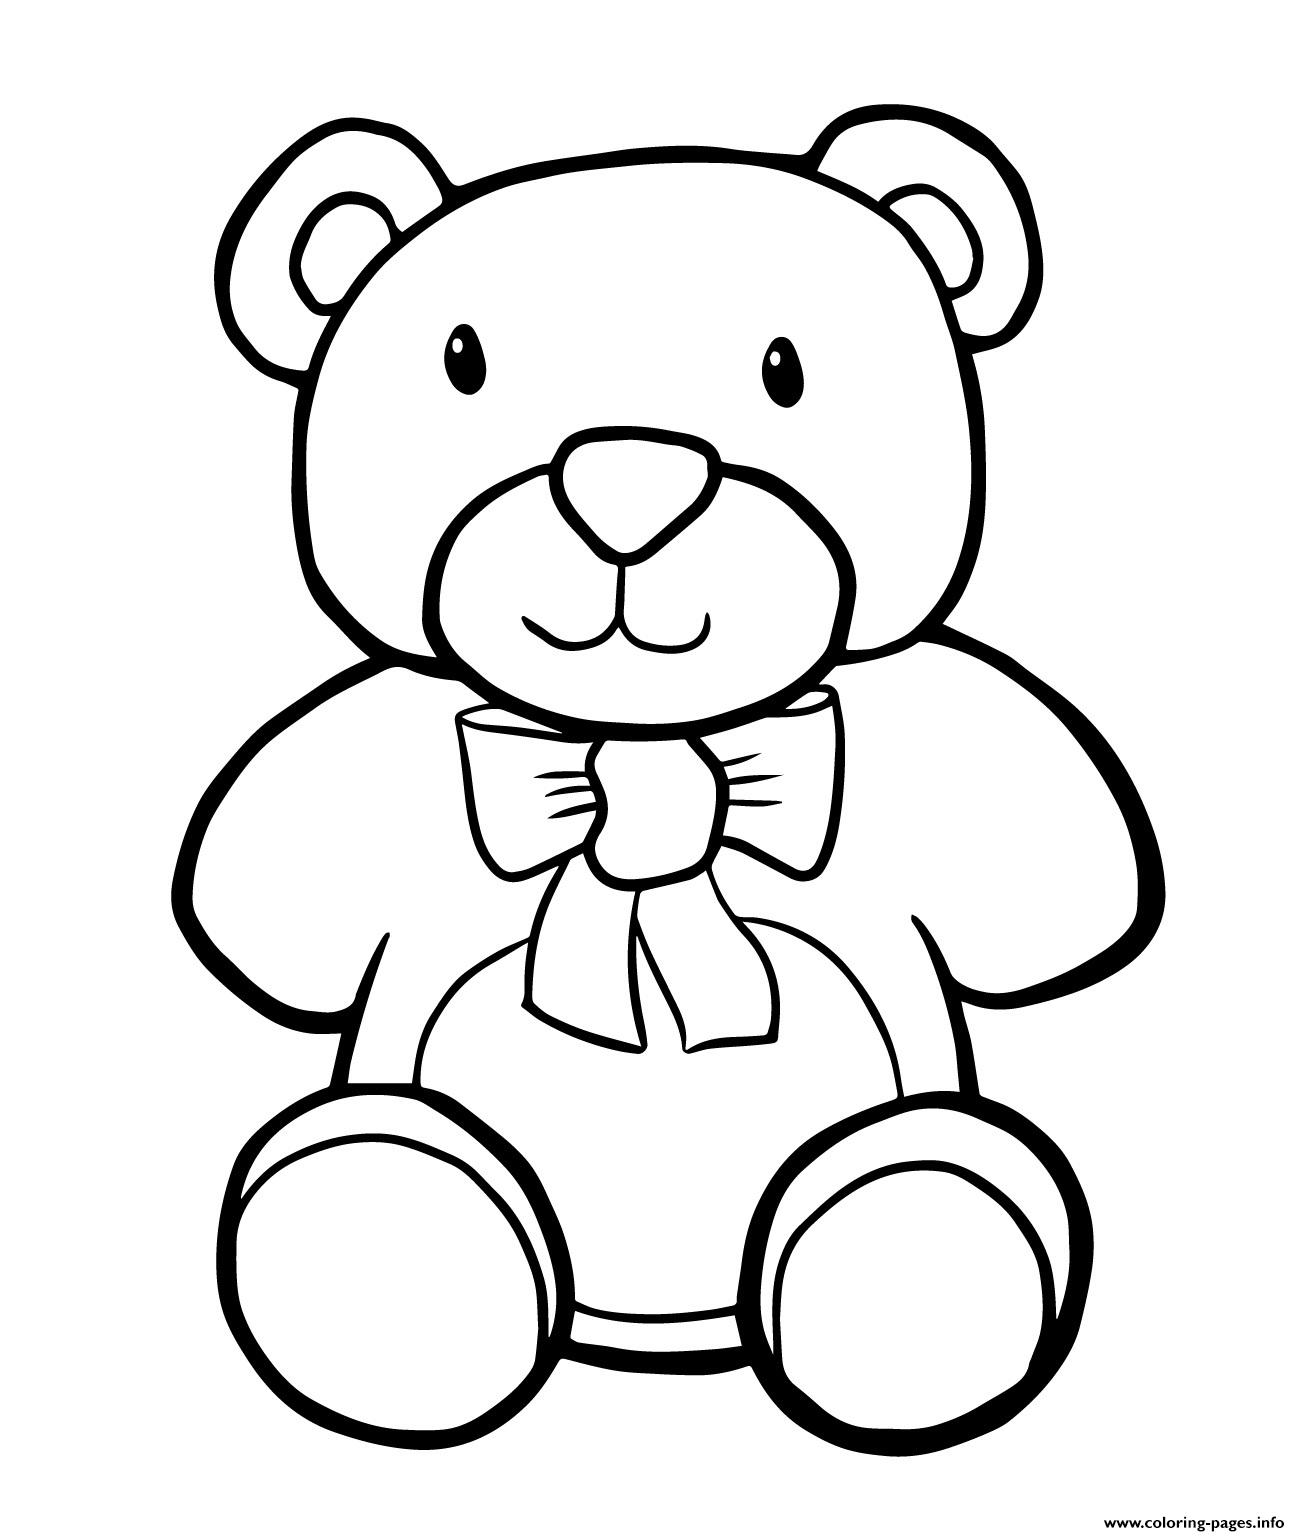 Teddy Bear Simple Kids Coloring Pages Printable | printable coloring pages easy